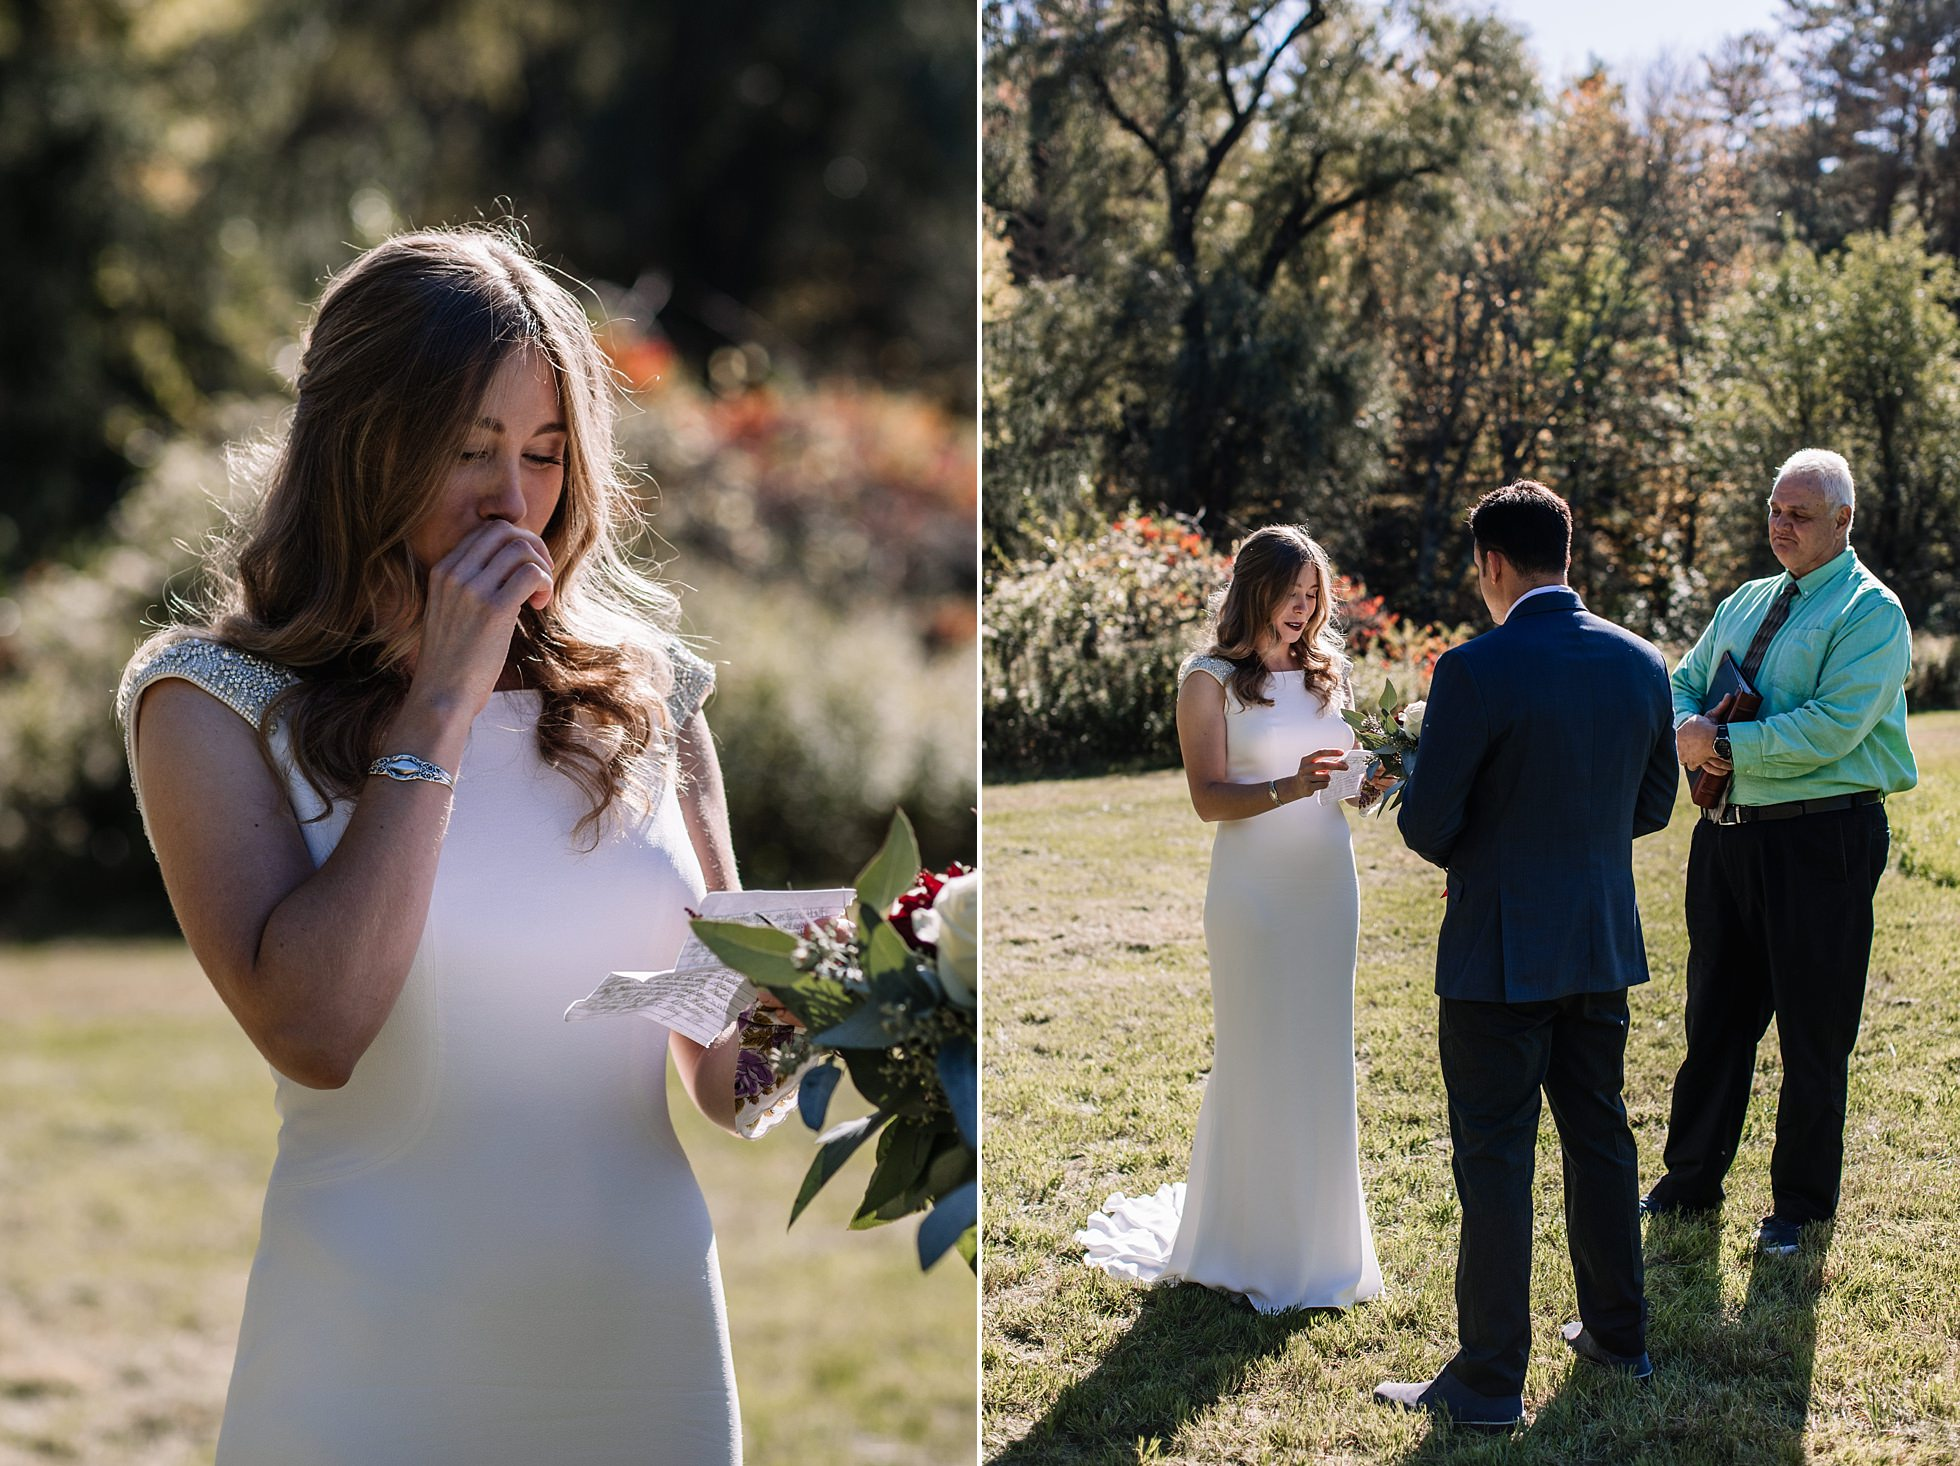 Intimate Elopement Vows Outdoors